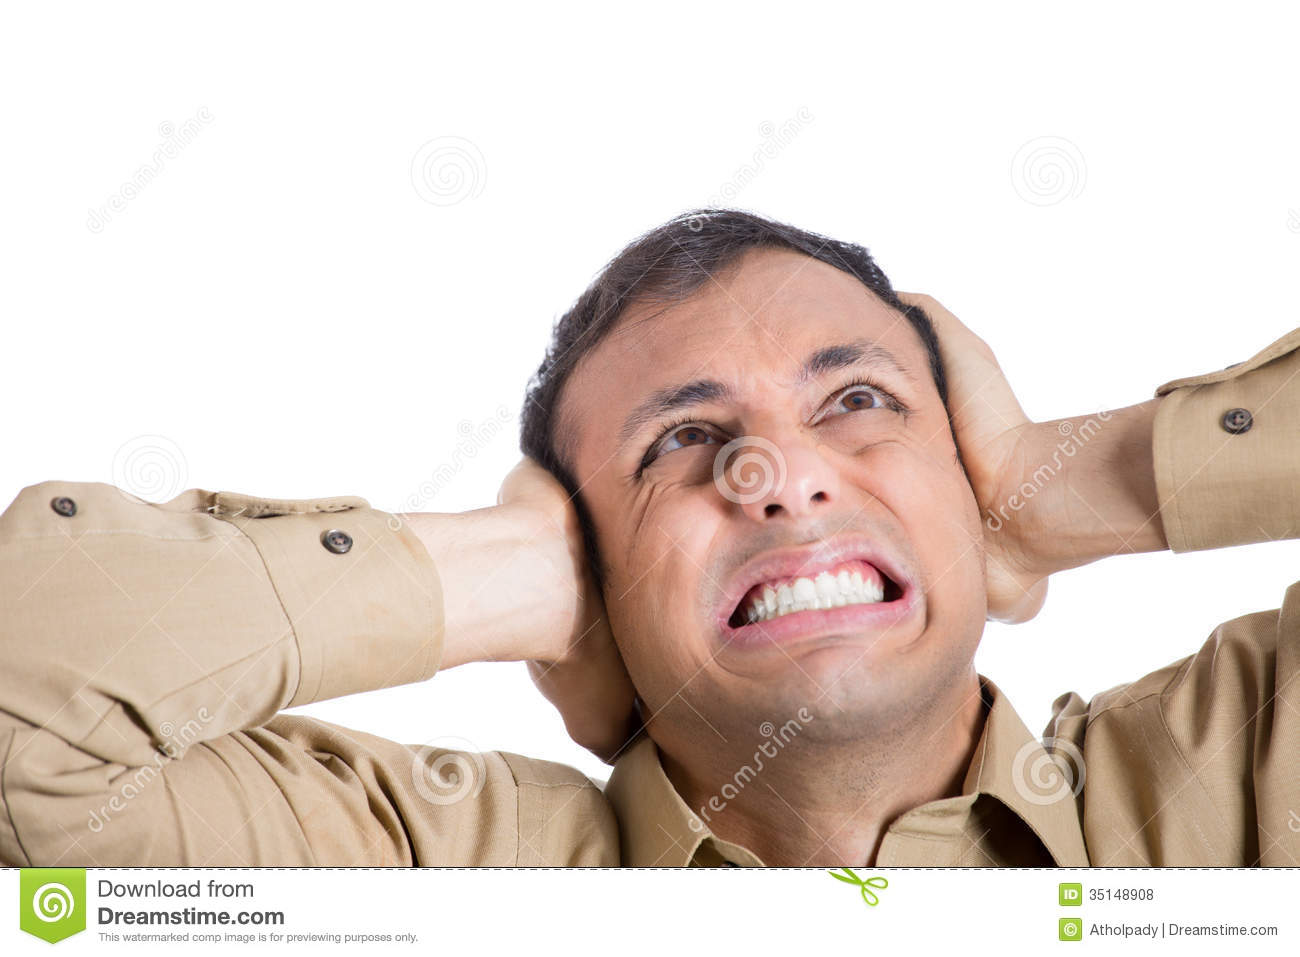 A Young Man Covering His Ears To Shut Out Noise Royalty Free Stock ...